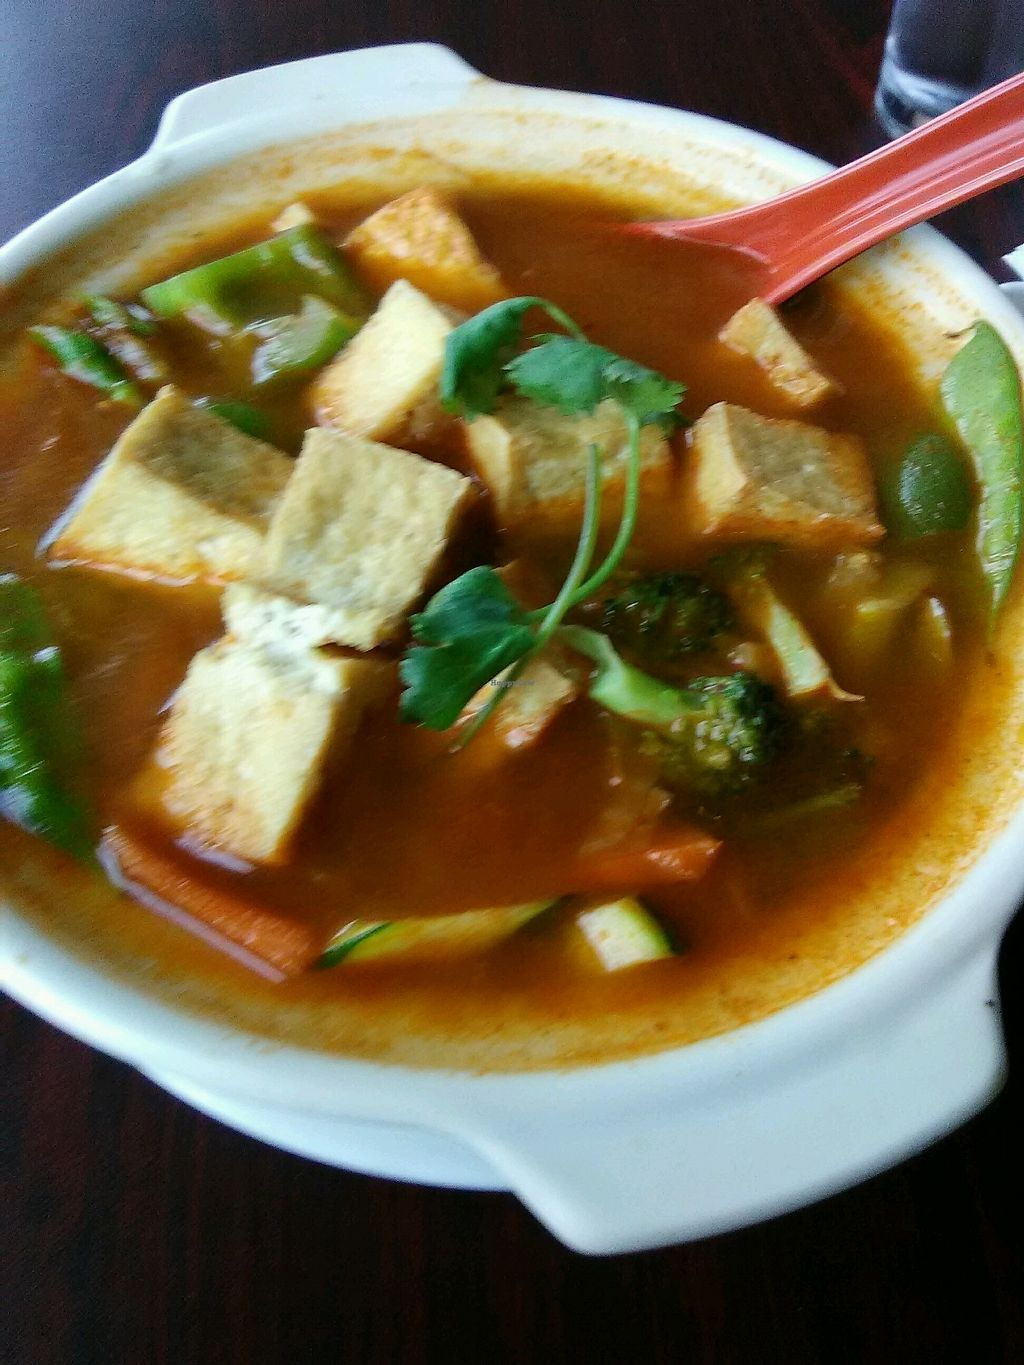 """Photo of Pacific East  by <a href=""""/members/profile/Williamewq123ify"""">Williamewq123ify</a> <br/>tan yam tofu vegetable clay pot  <br/> April 14, 2018  - <a href='/contact/abuse/image/117151/385822'>Report</a>"""